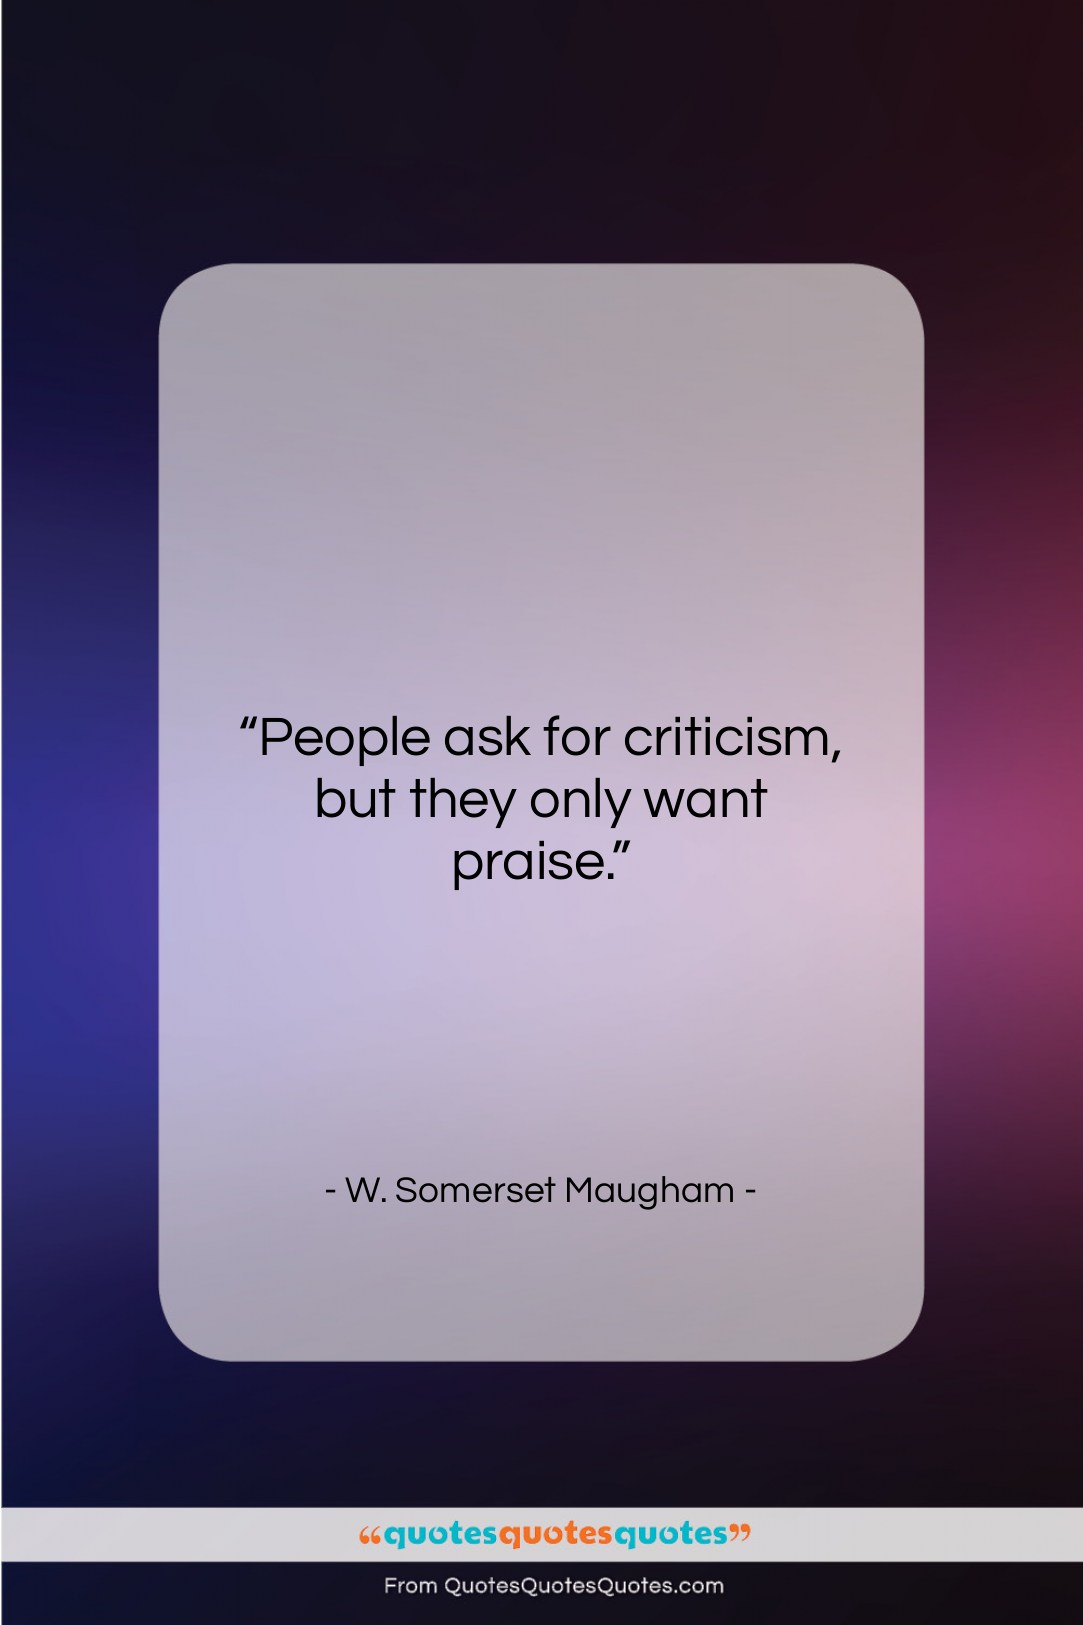 """W. Somerset Maugham quote: """"People ask for criticism, but they only…""""- at QuotesQuotesQuotes.com"""